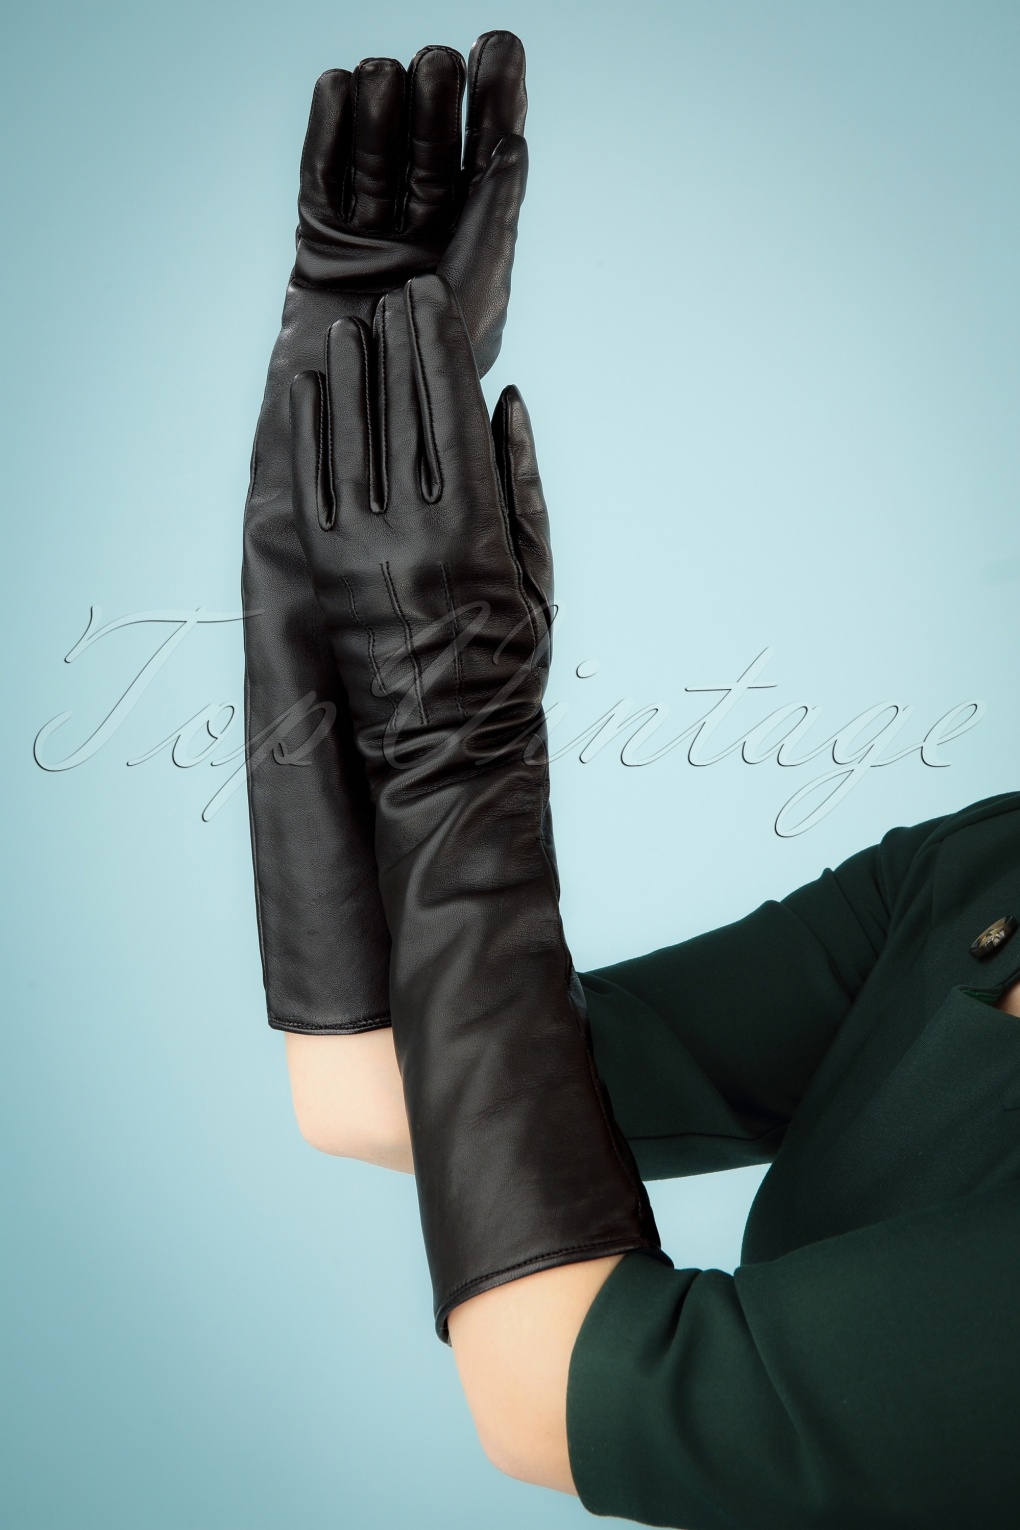 1940s Accessories: Belts, Gloves, Head Scarf The Leather Gloves in Black £44.52 AT vintagedancer.com